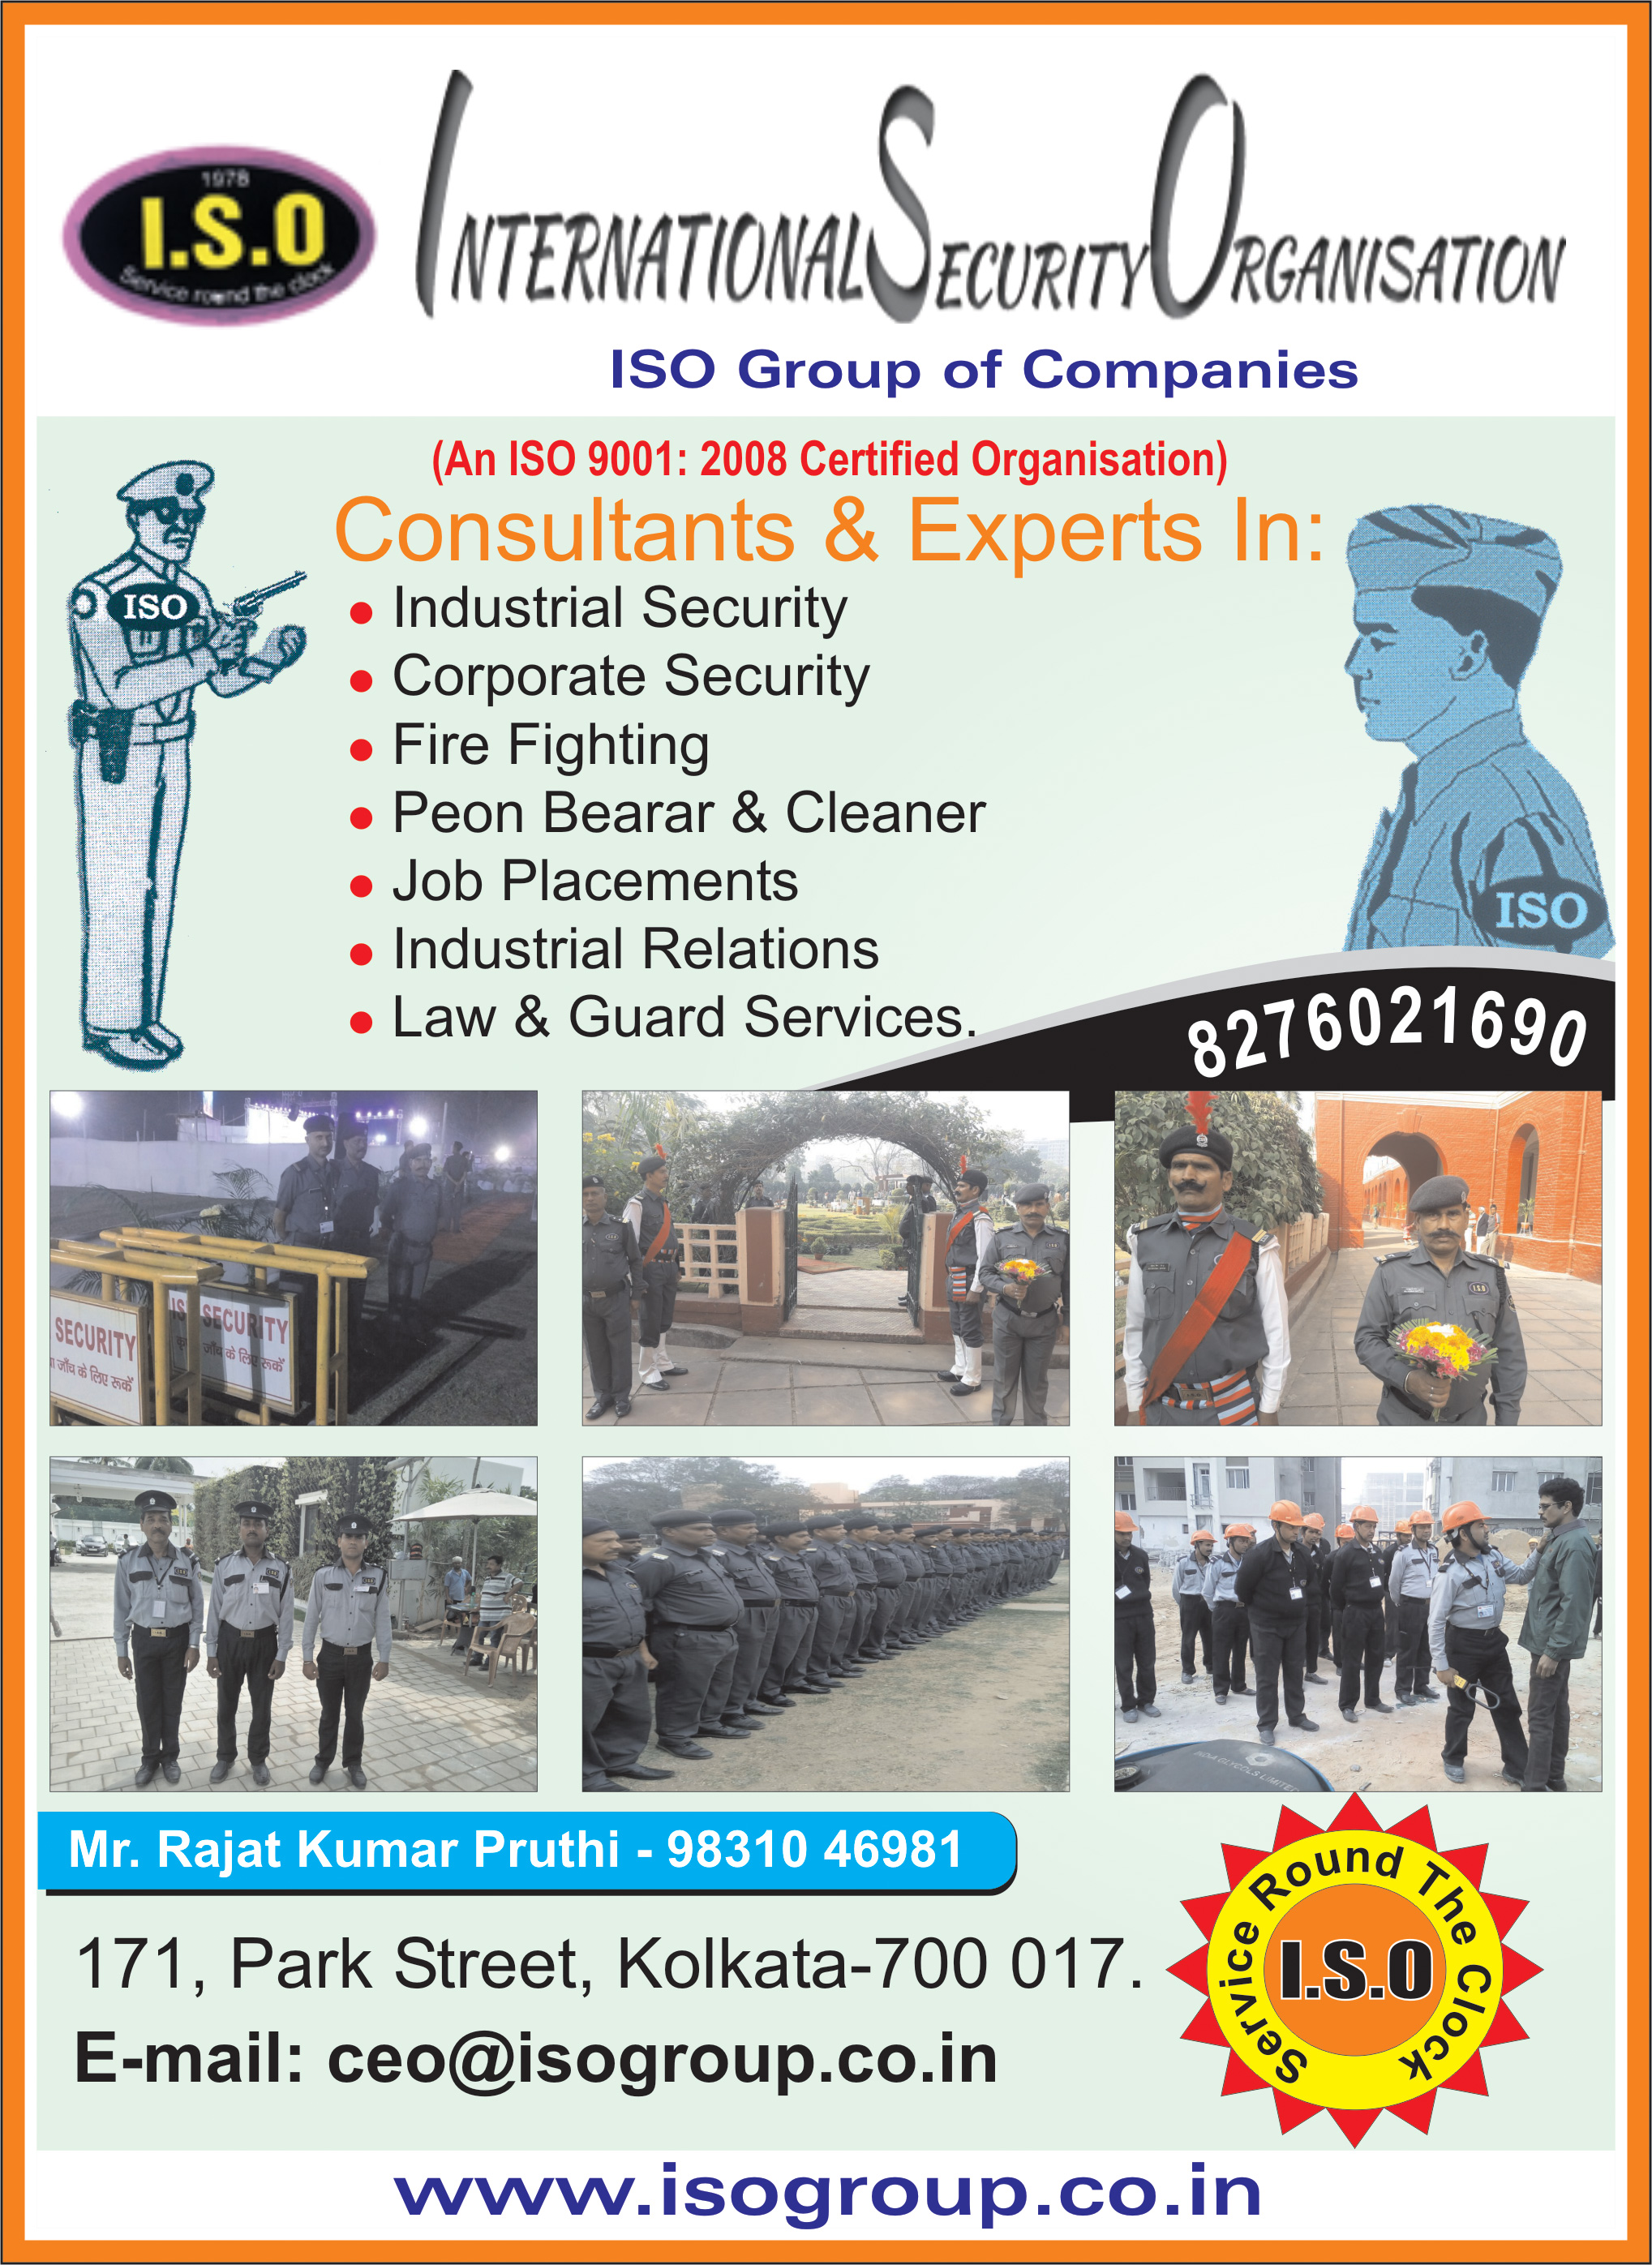 Security Services, INTERNATIONAL SECURITY ORGANISATION, Kolkata,  Yellow Pages, Kolkata, West Bengal